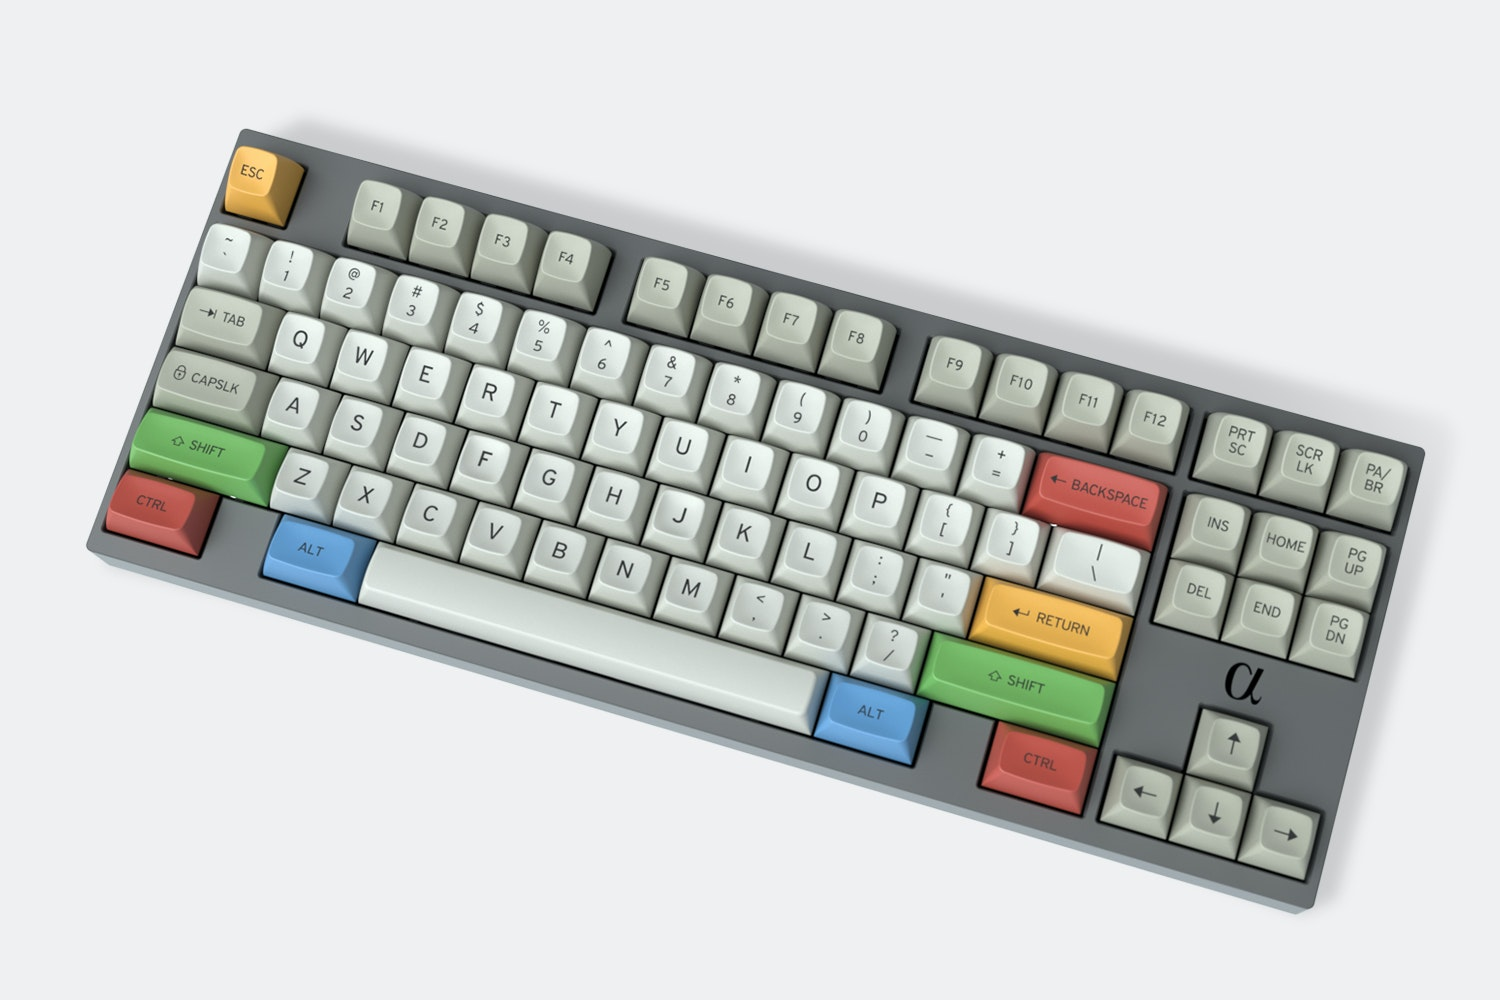 Massdrop x Matt3o /dev/tty MT3 Custom Keycap Set